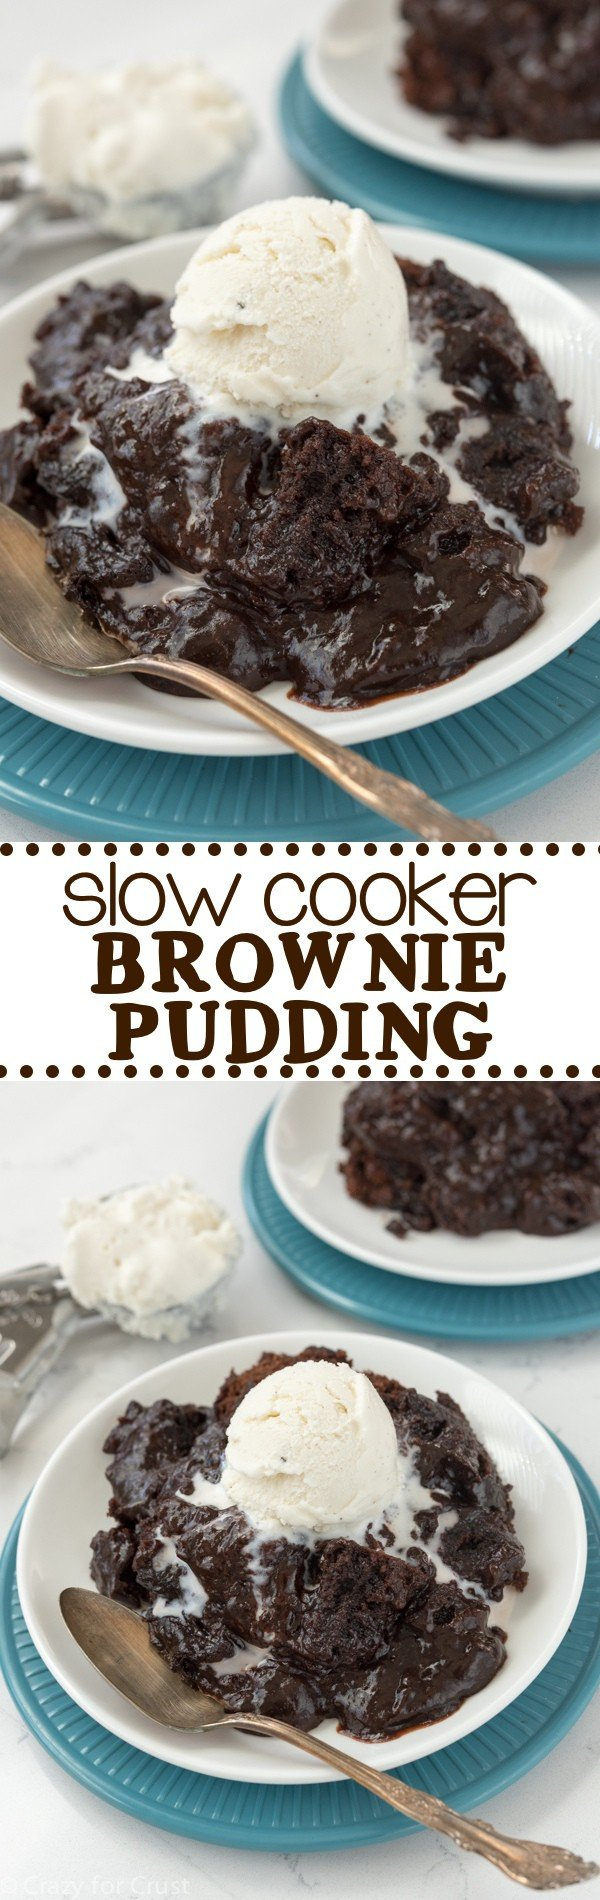 Slow Cooker Brownie Pudding - this easy recipe is so gooey and ...